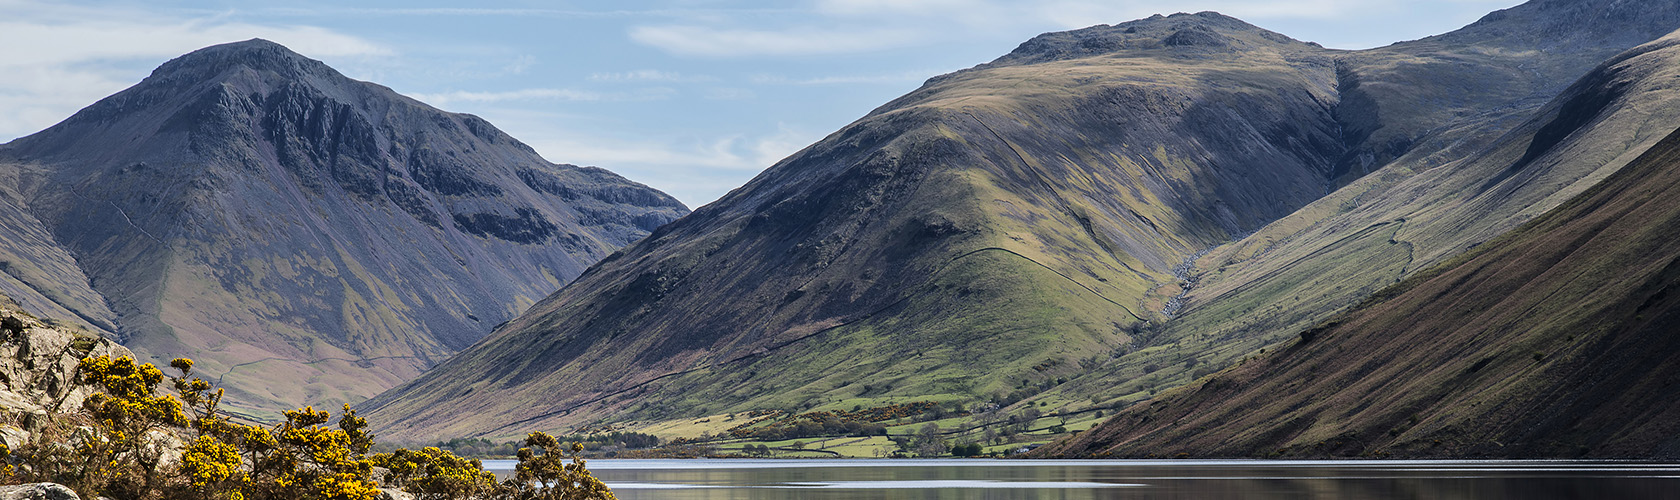 Scafell Pike header image - mountains and lake